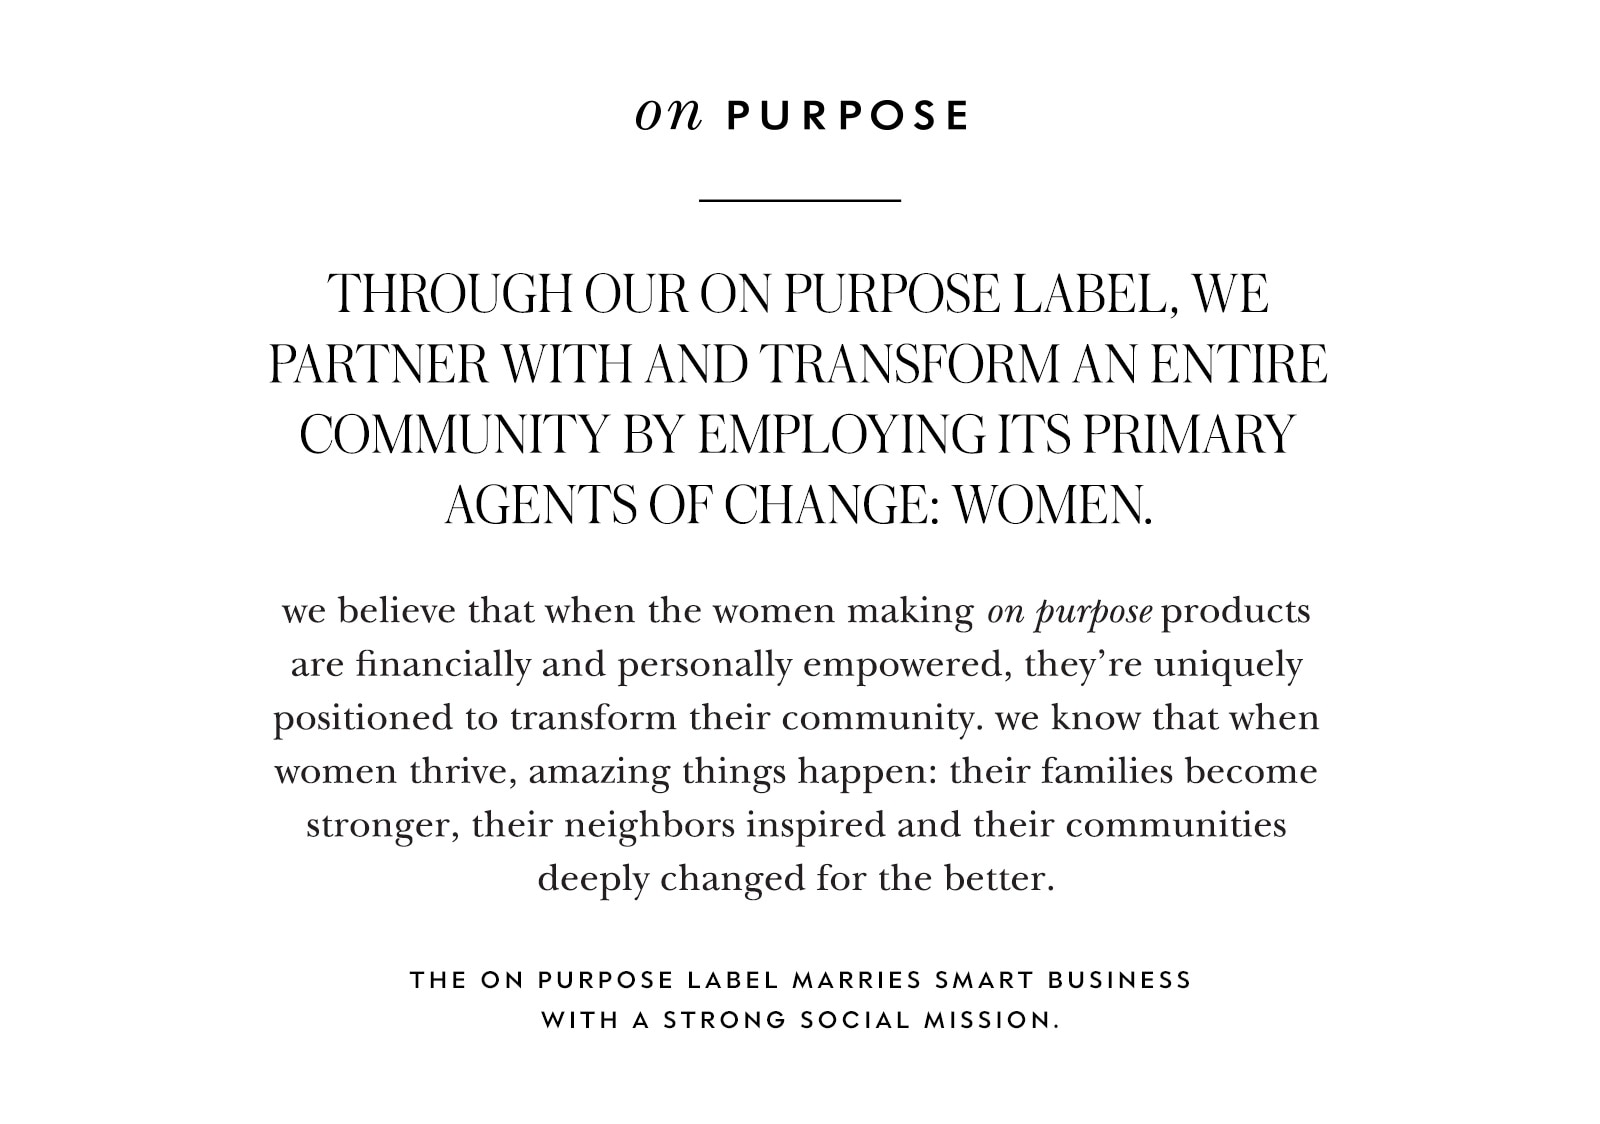 on purpose. through our on purpose label, we partner with and transform an entire community by employing its primary agents of change: women.